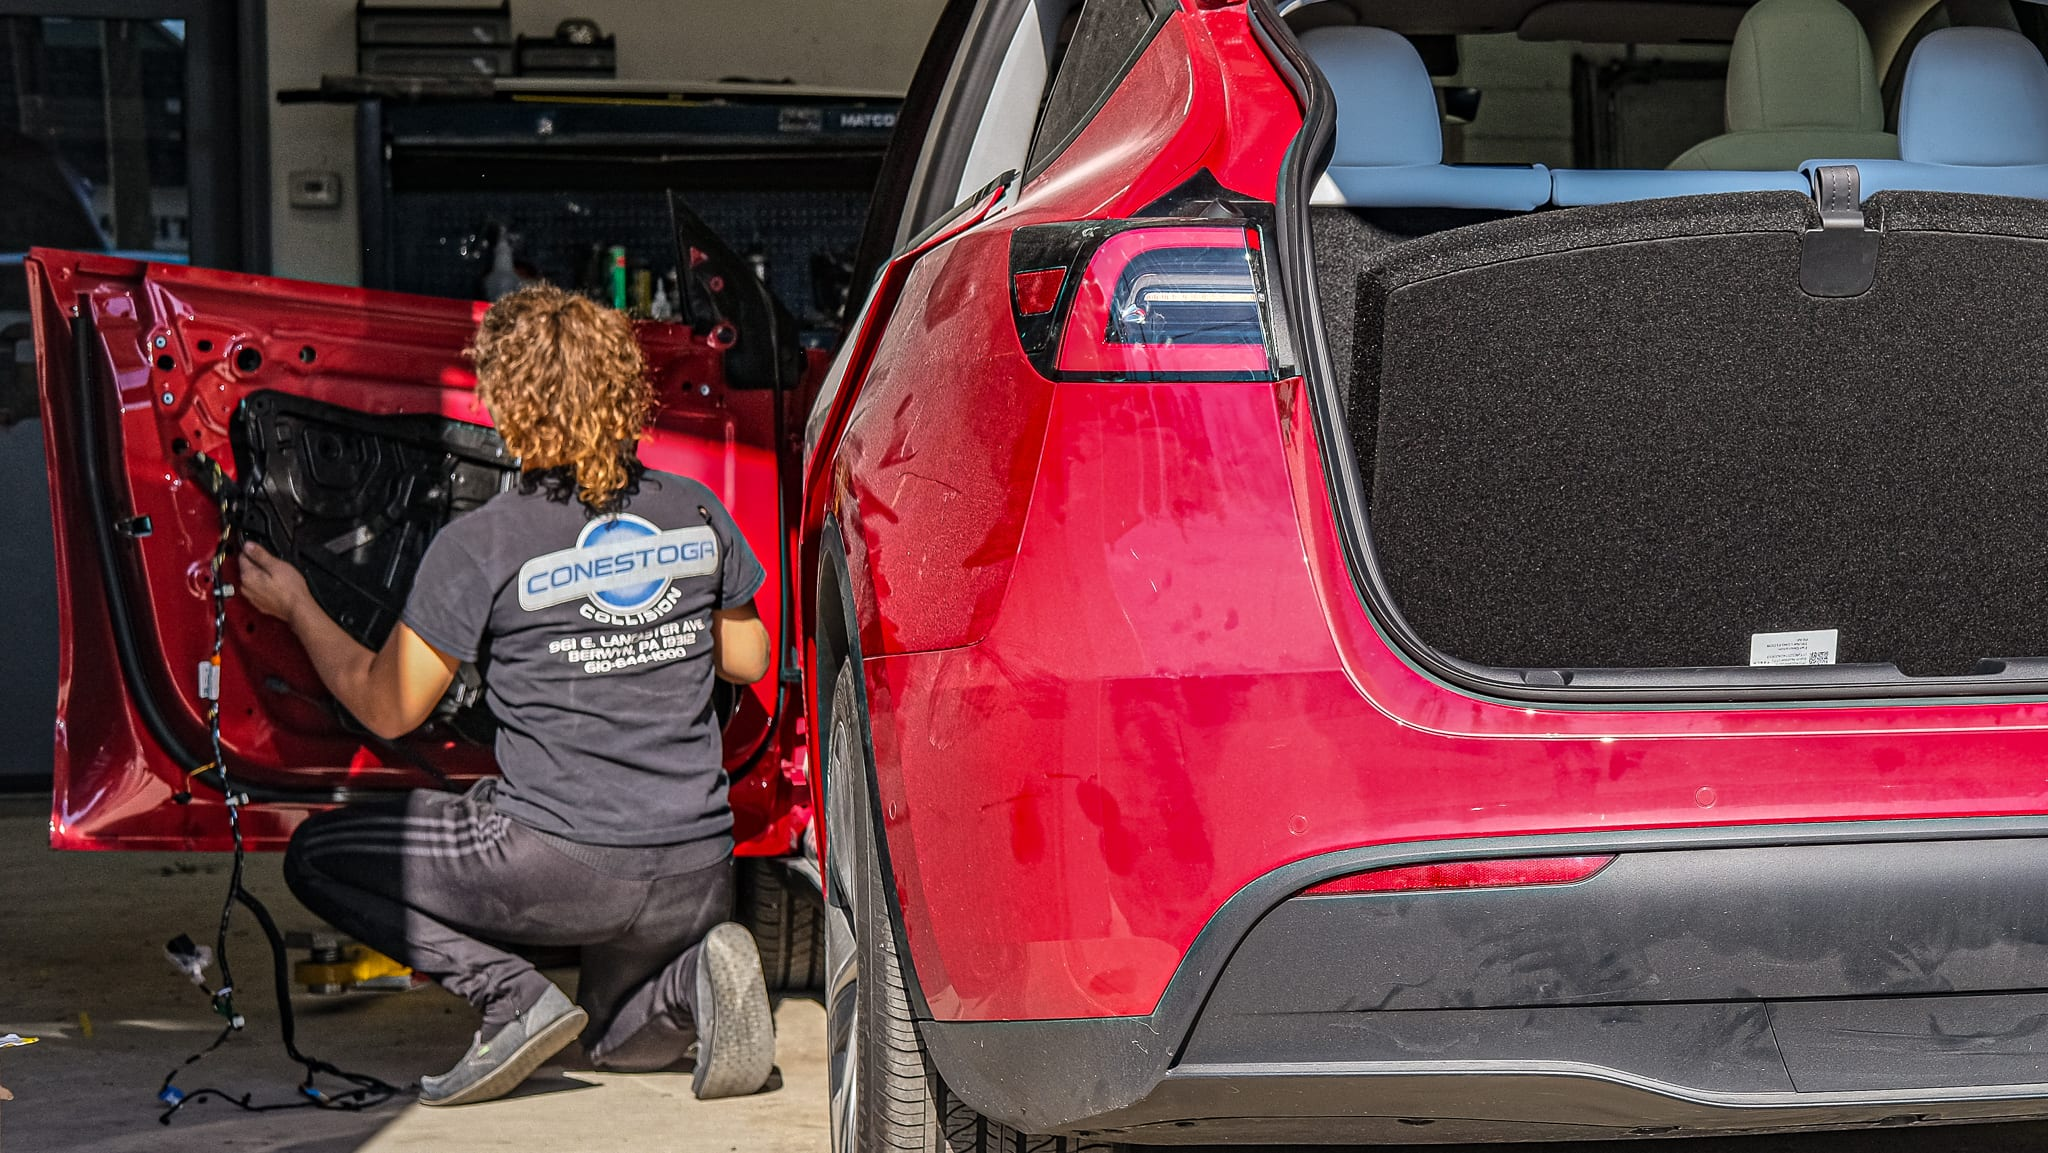 Technician Sydney disassembling a Tesla, cataloging every part along the way.